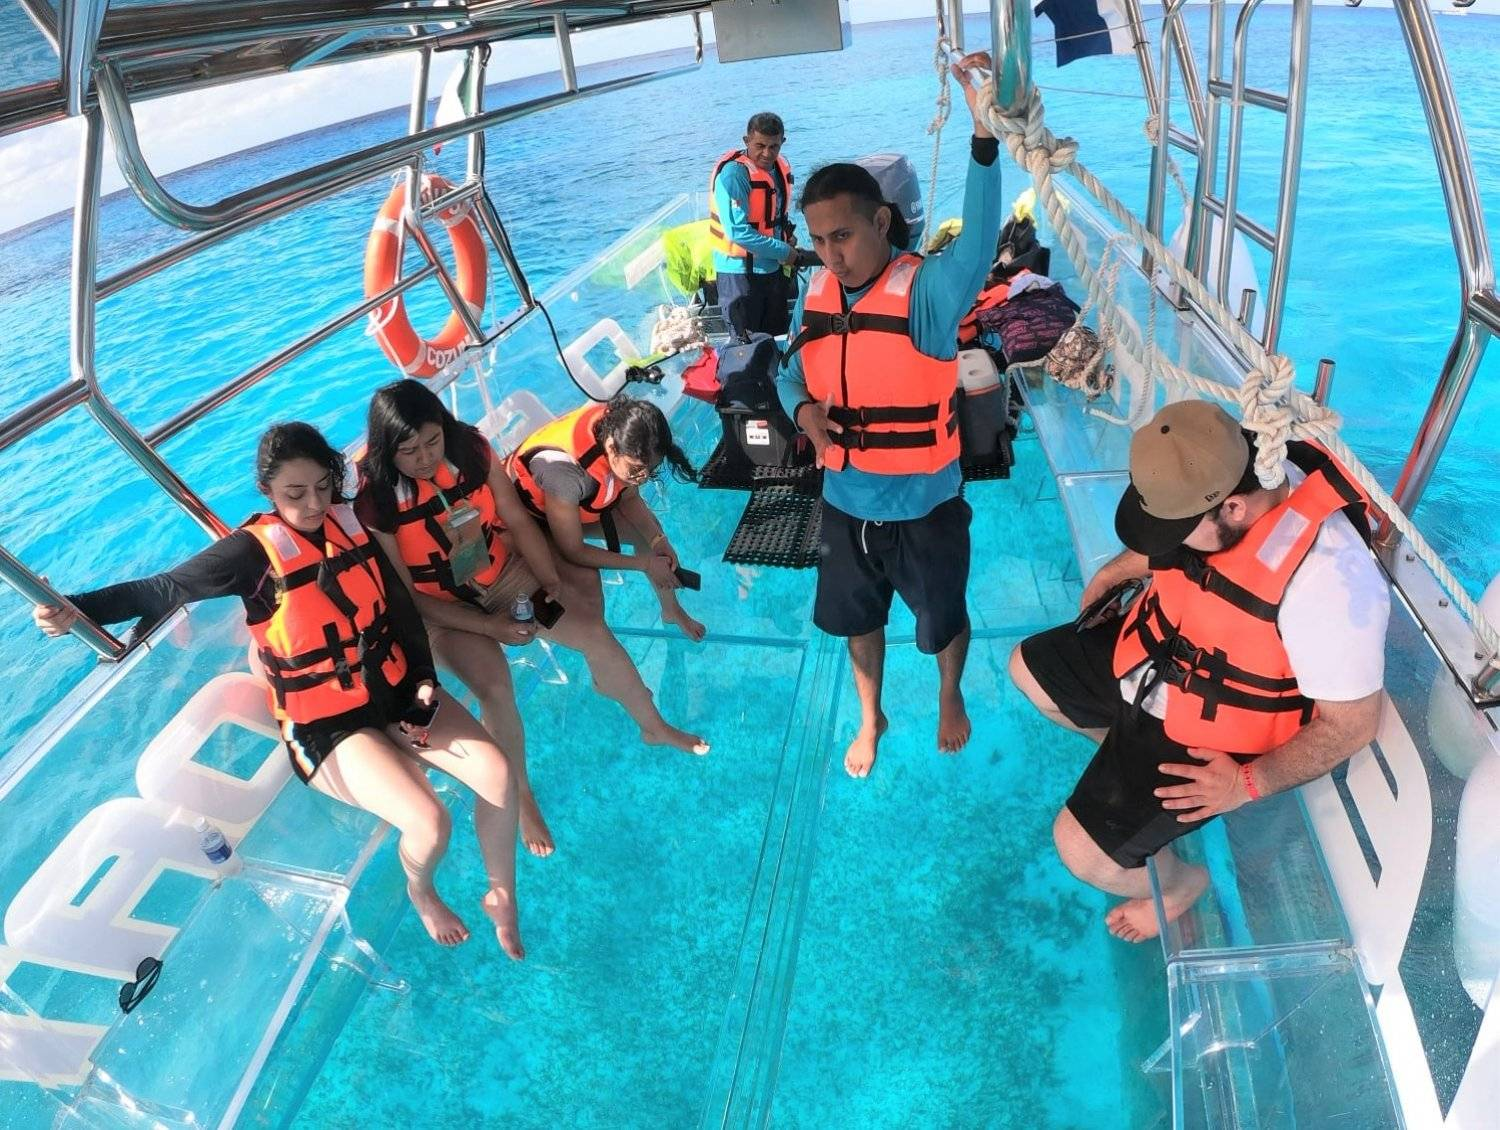 Cozumel Clear Boat - Last Minute Tours in Cancún and Riviera Maya